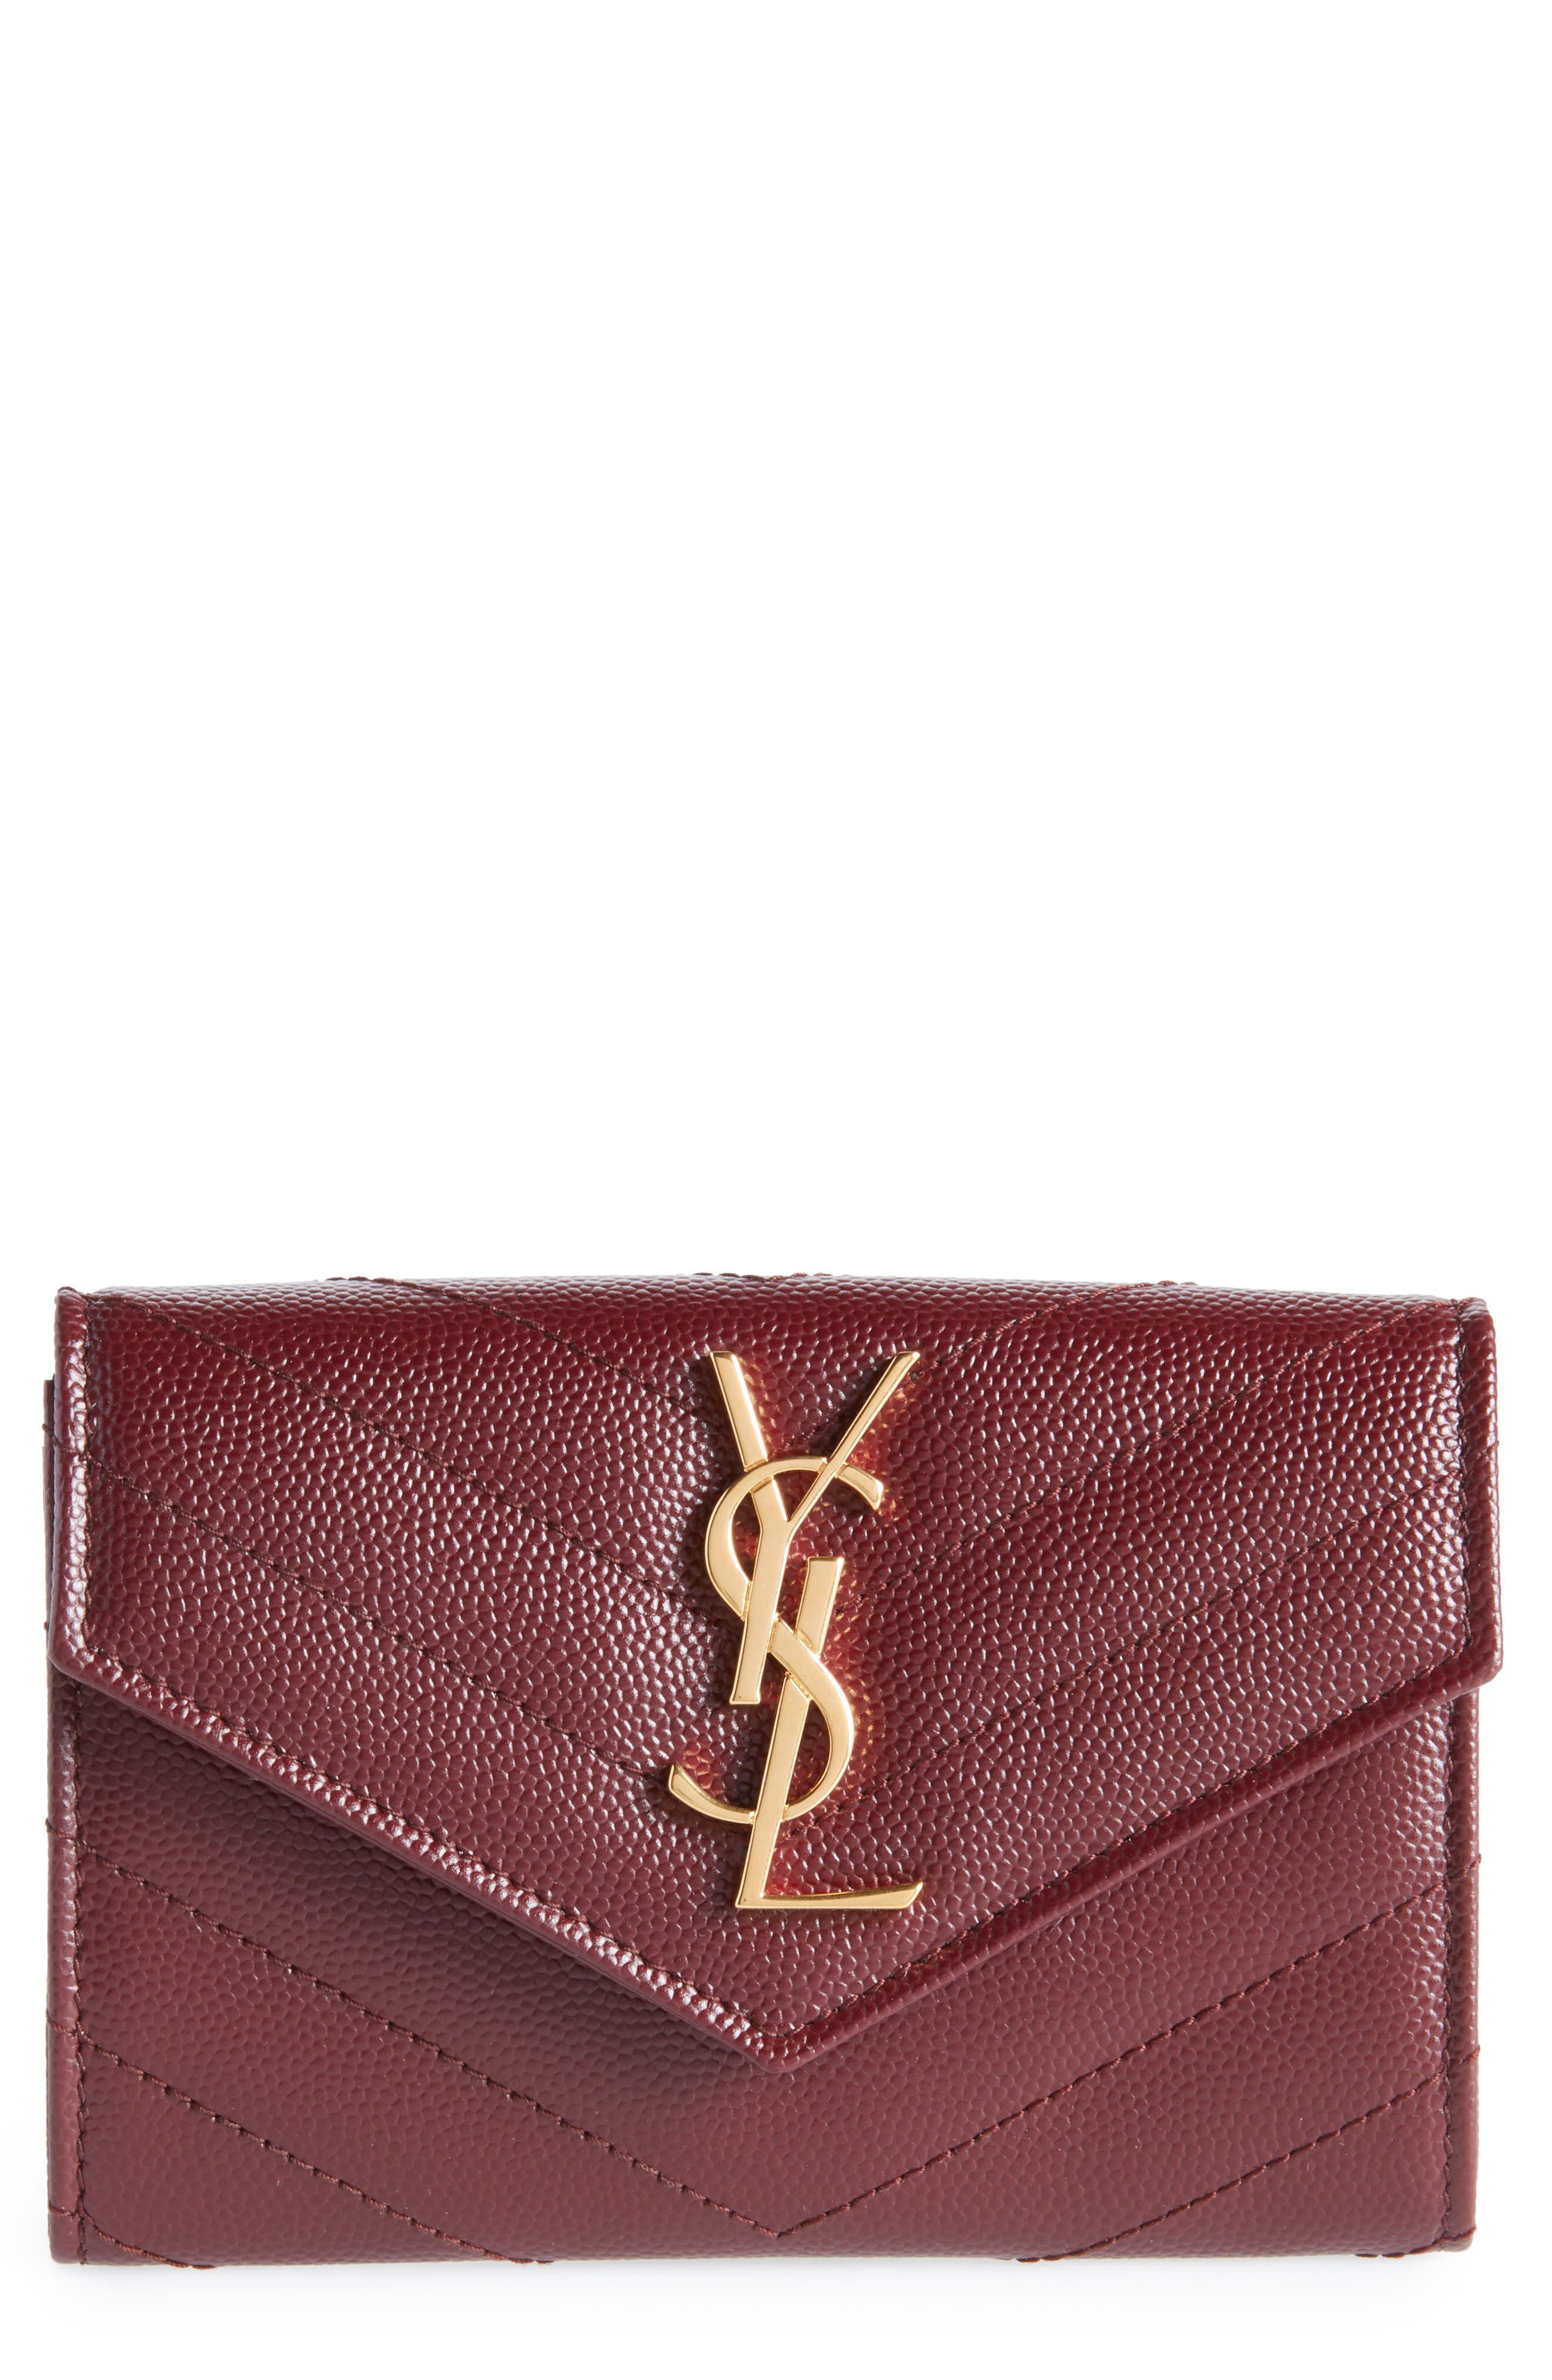 'Monogram' Quilted Leather French Wallet,                             Main thumbnail 1, color,                             ROUGE LEGION